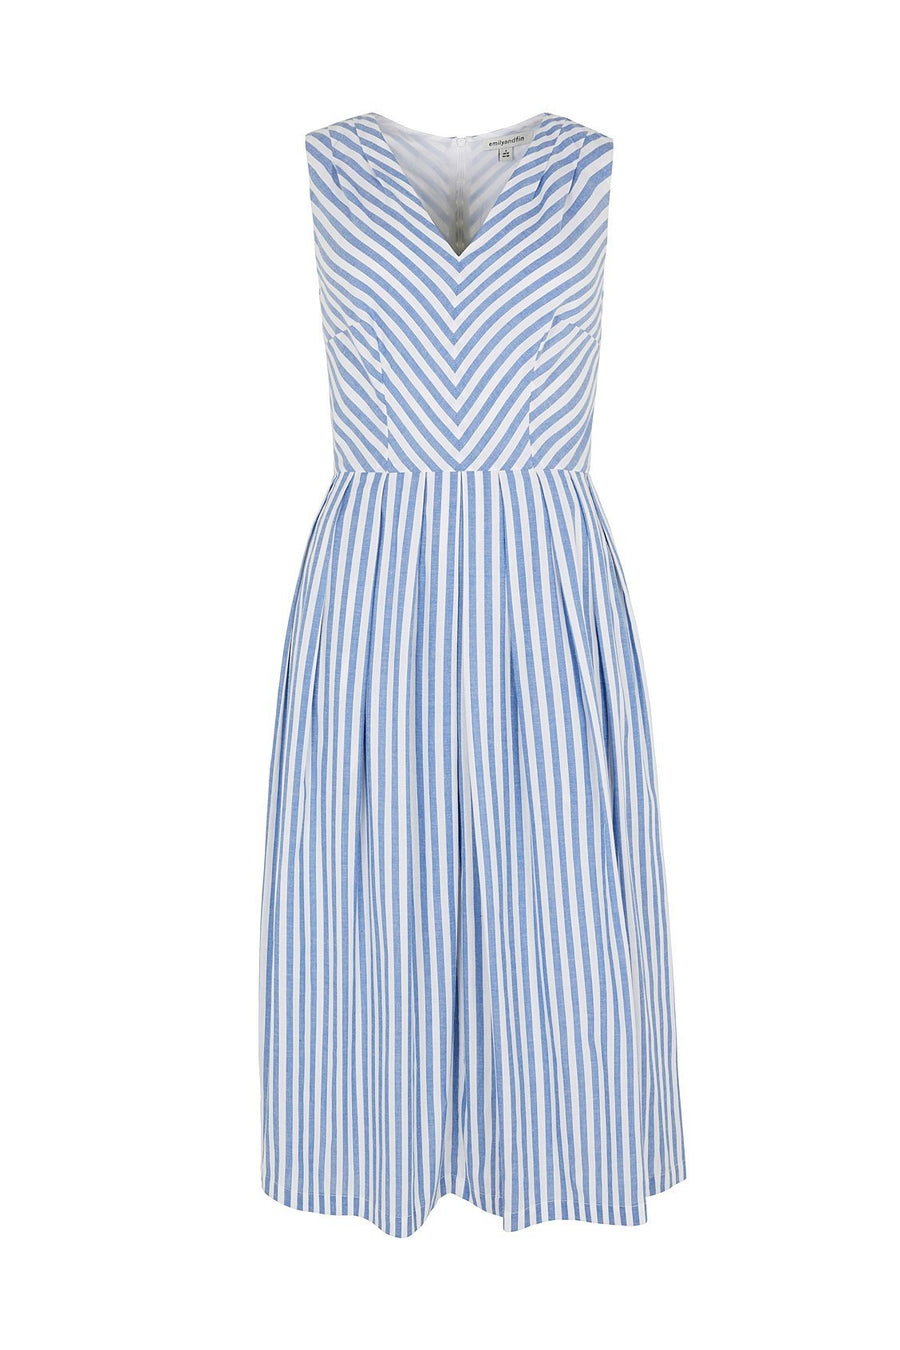 Josie Sunlounger Stripe Midi Dress Dress BouChic | Homeware, Fashion, Gifts, Accessories